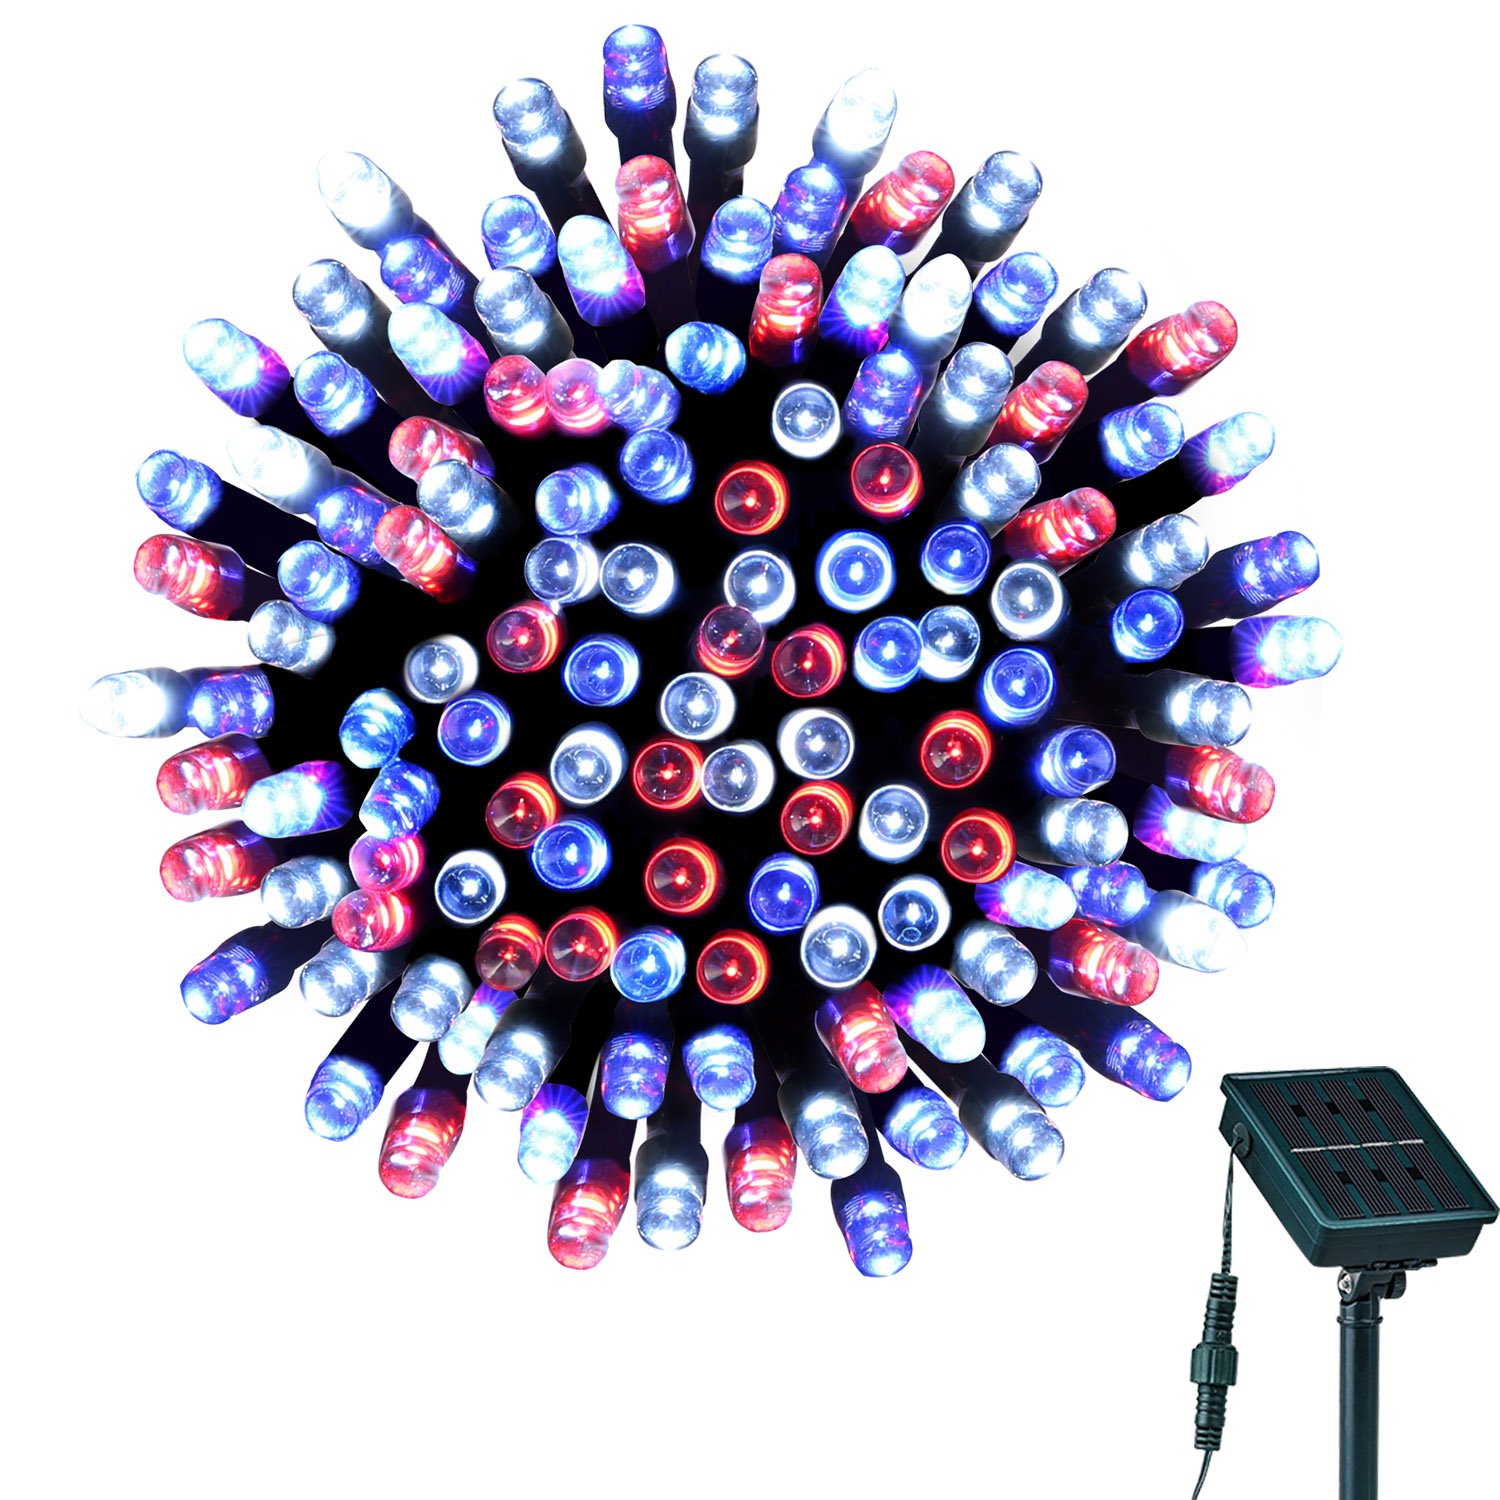 Red Decorative String Lights : Solar String Lights Outdoor 72ft 200LED Waterproof Red White Blue Decorative eBay